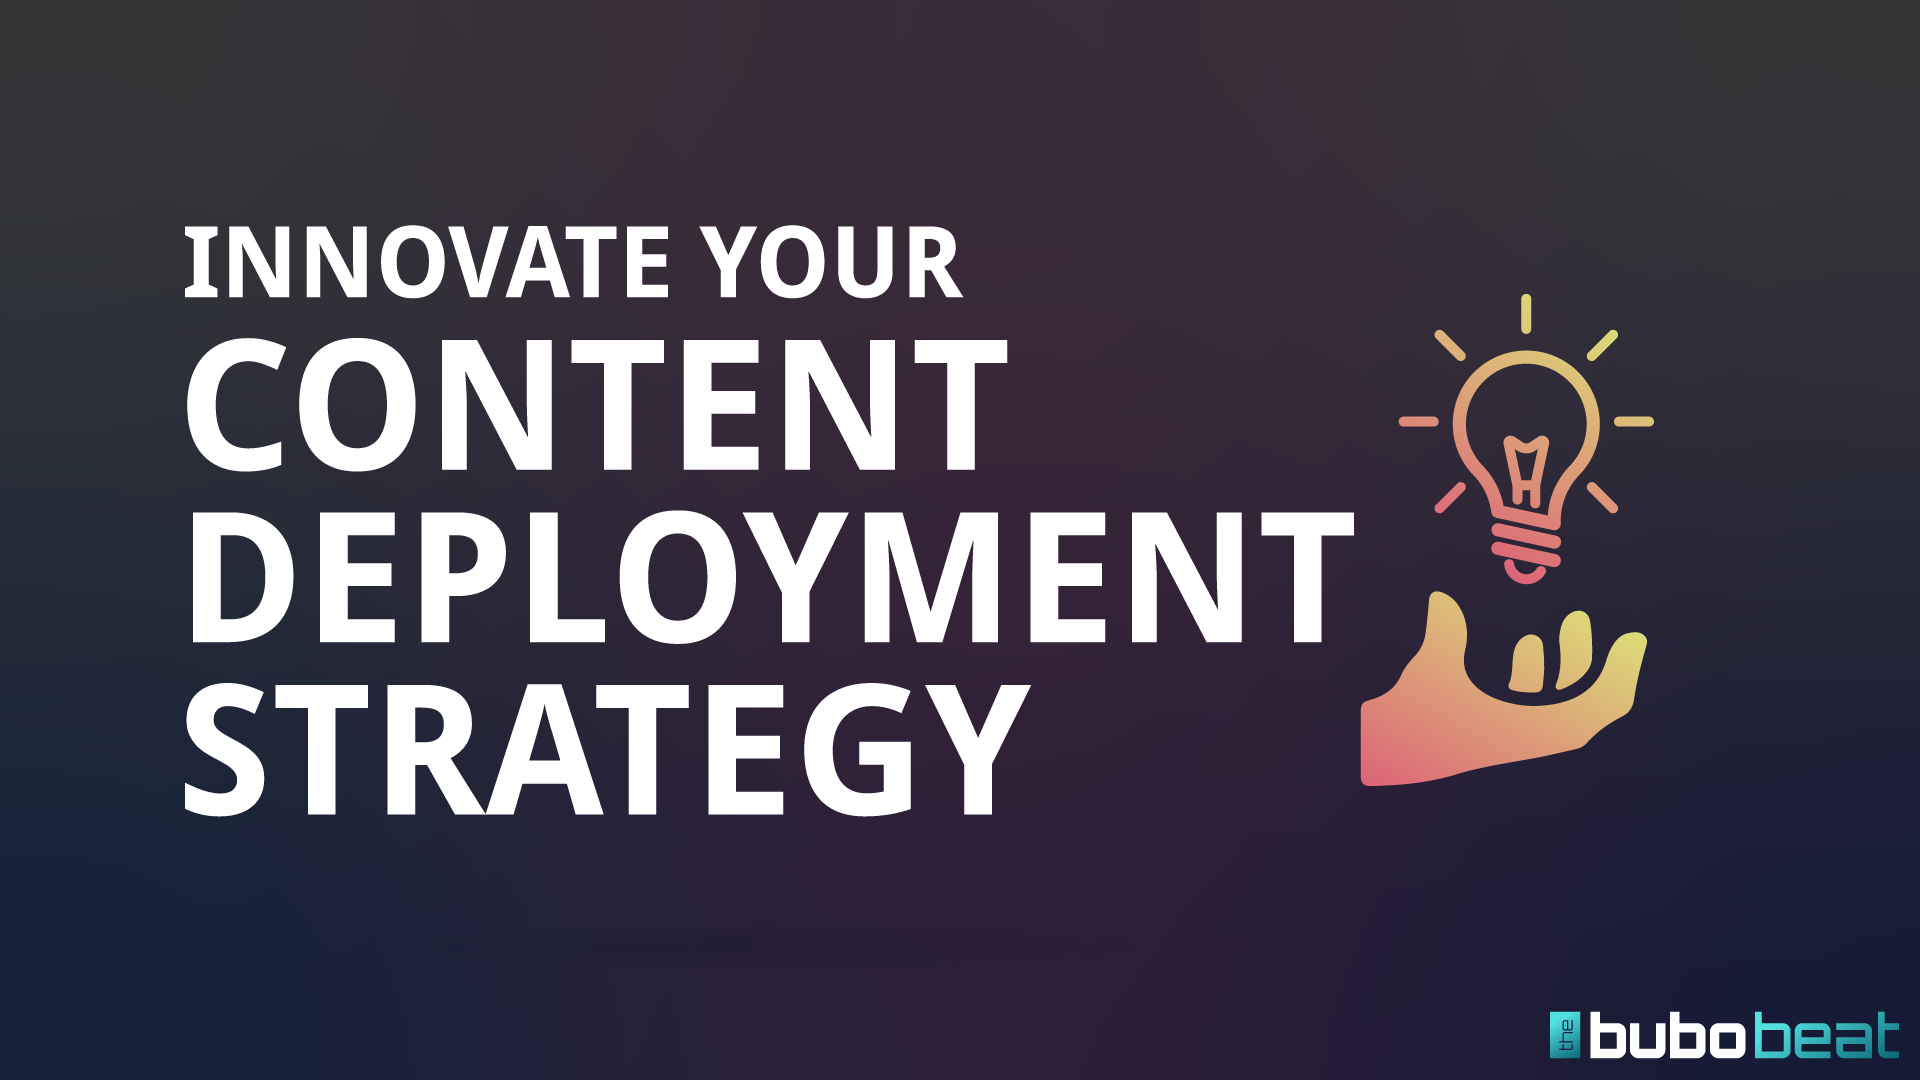 Innovate your content deployment strategy